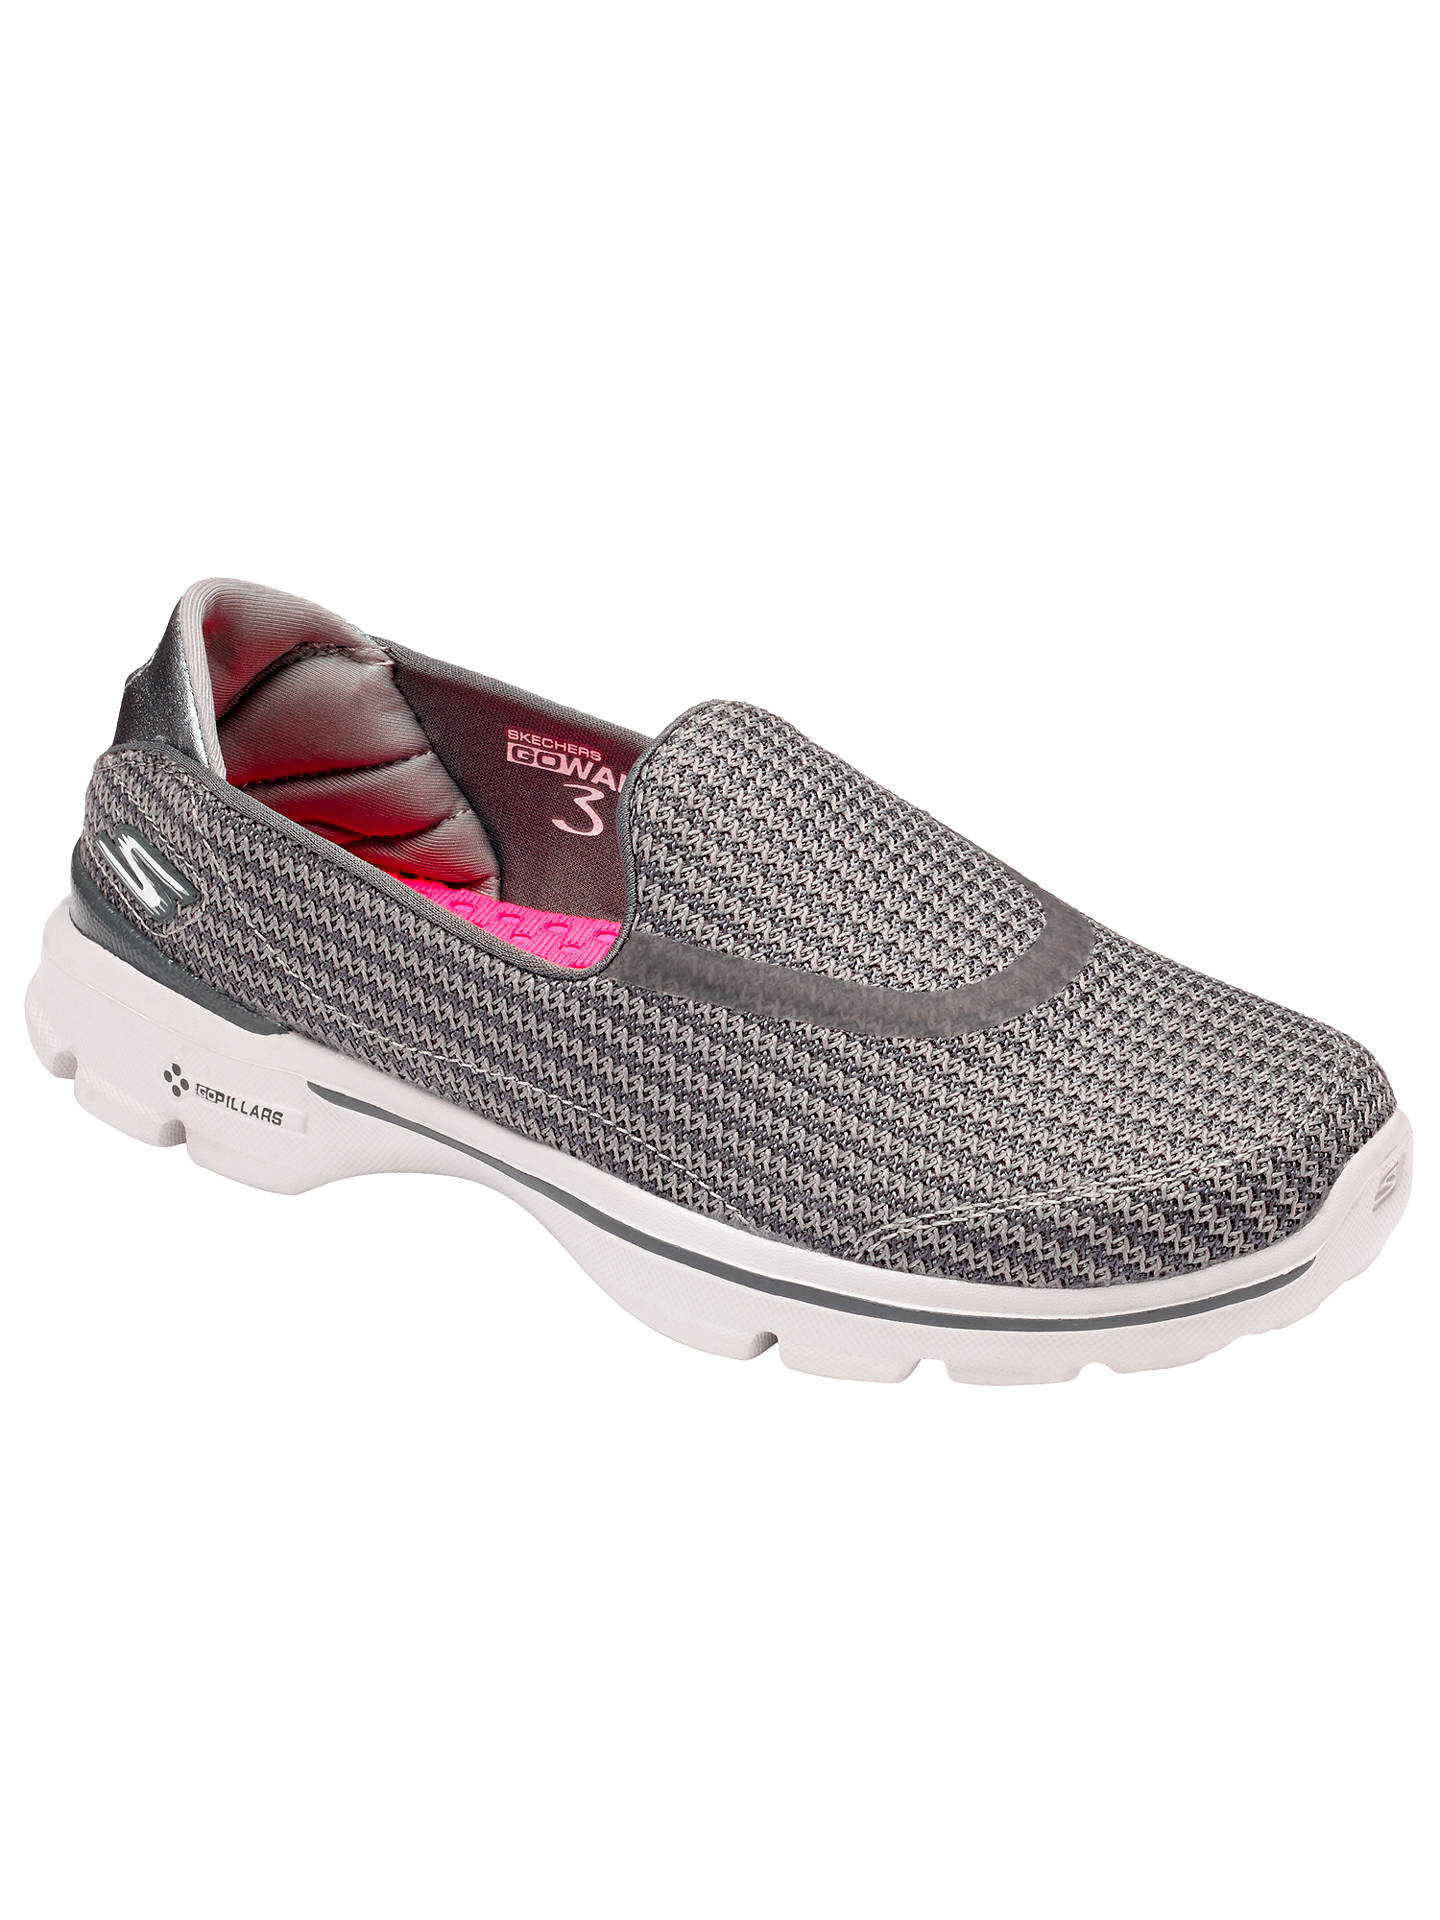 e06db6bbd4de8 Skechers GOwalk 3 Slip On Trainers at John Lewis   Partners